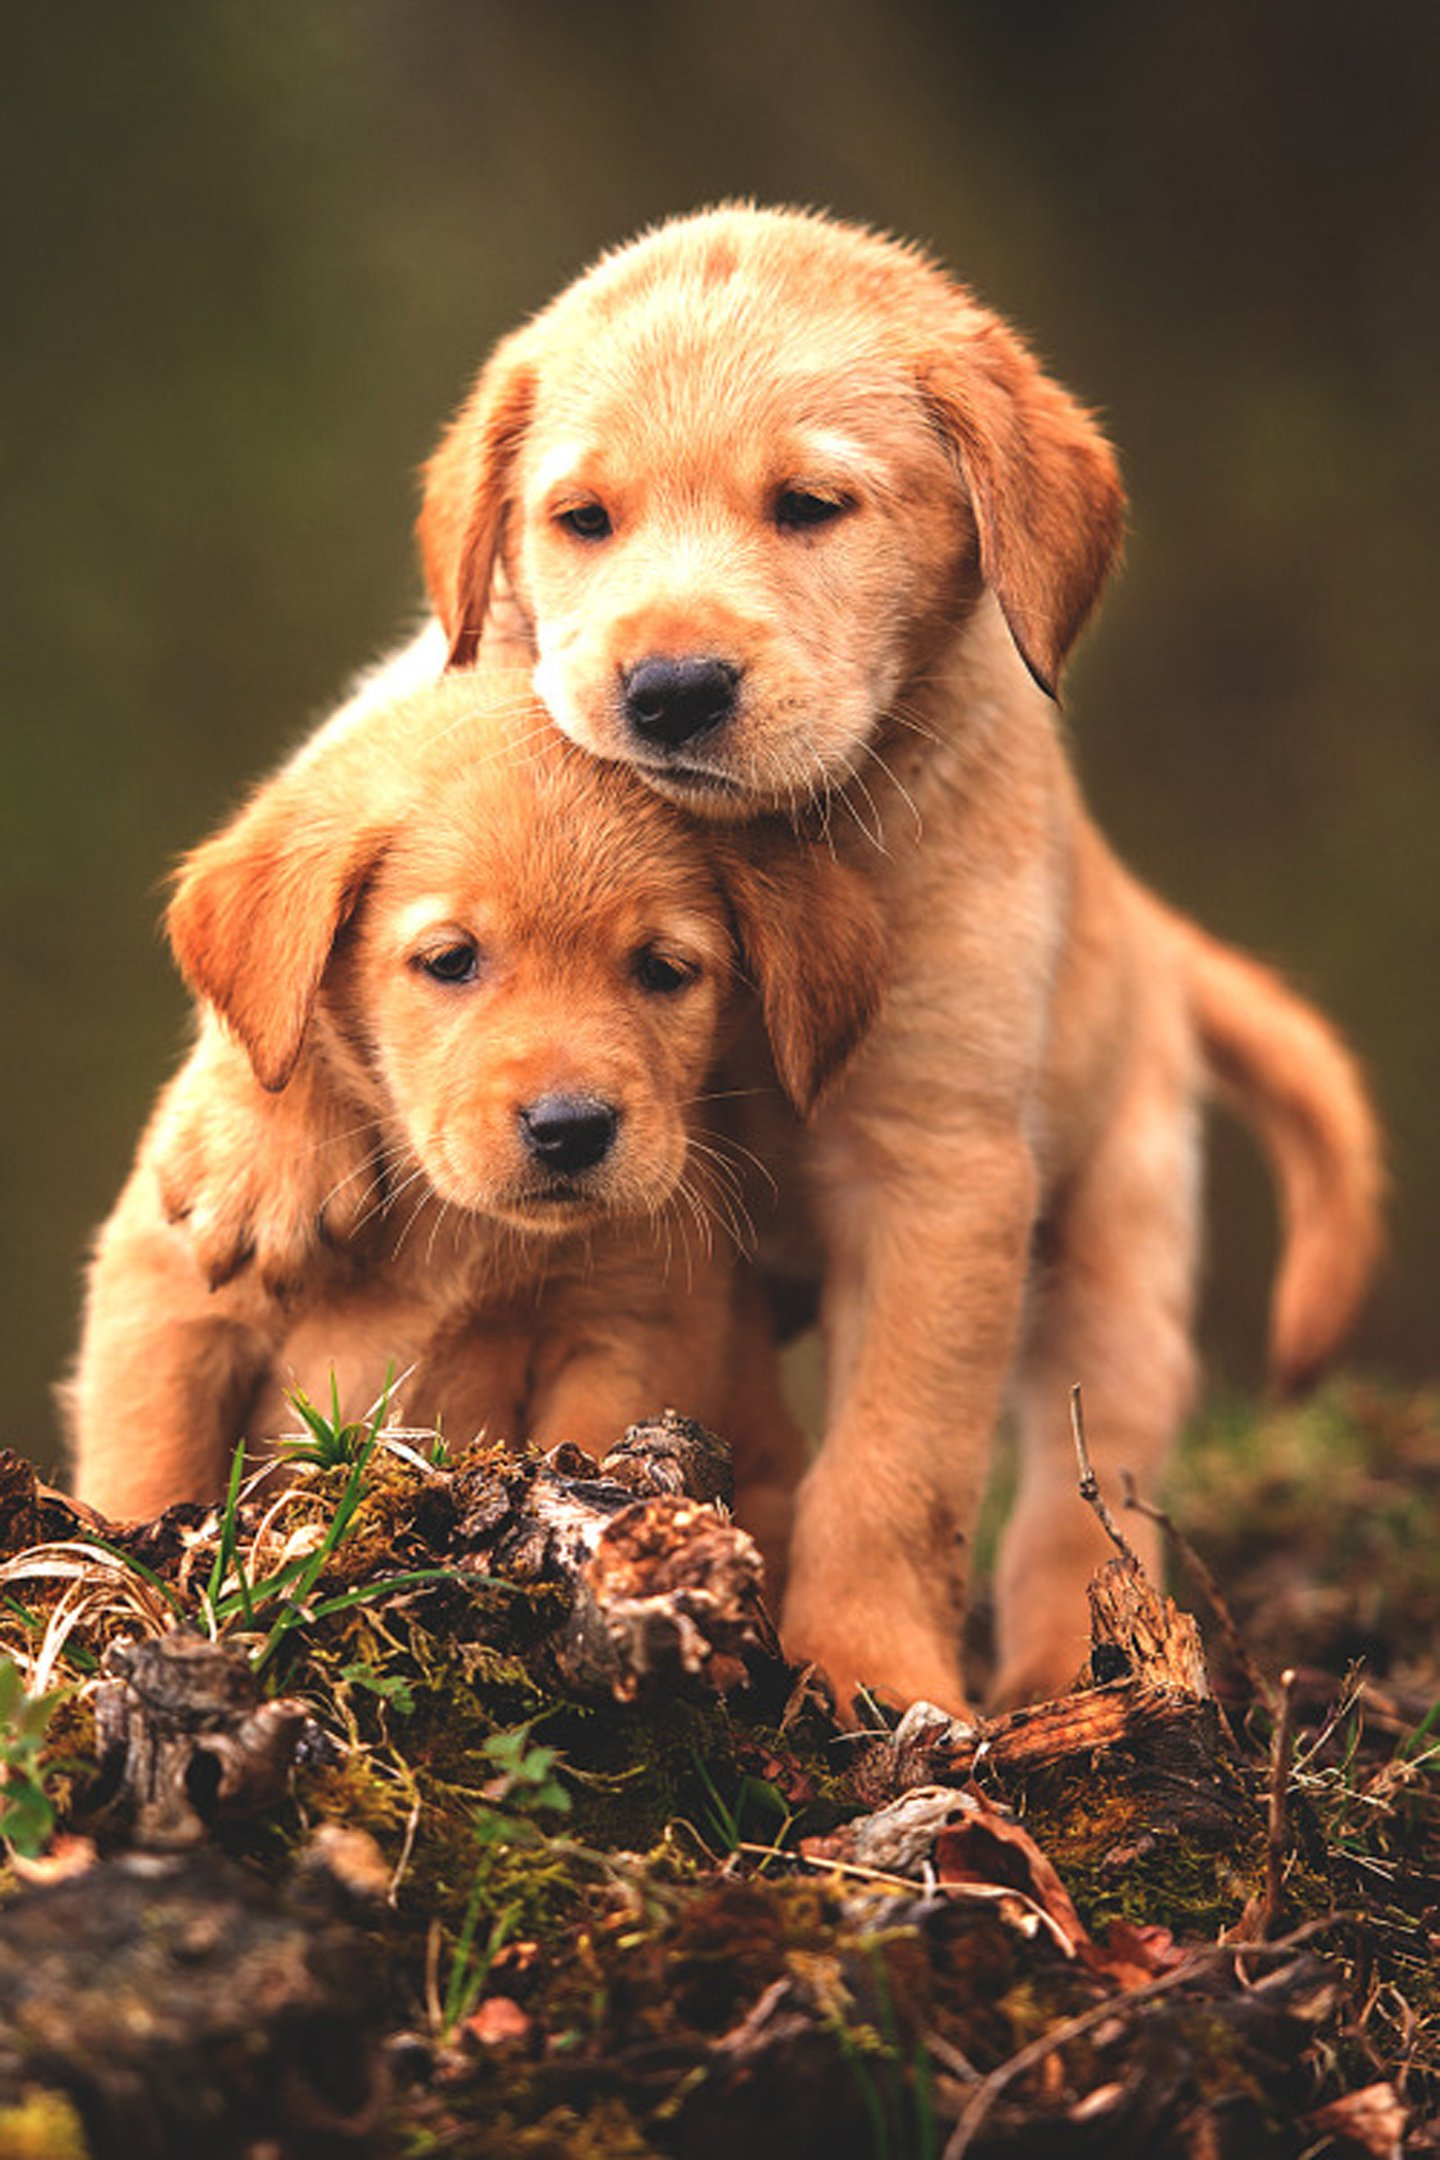 Cute Baby Animal Dogs Wallpaper